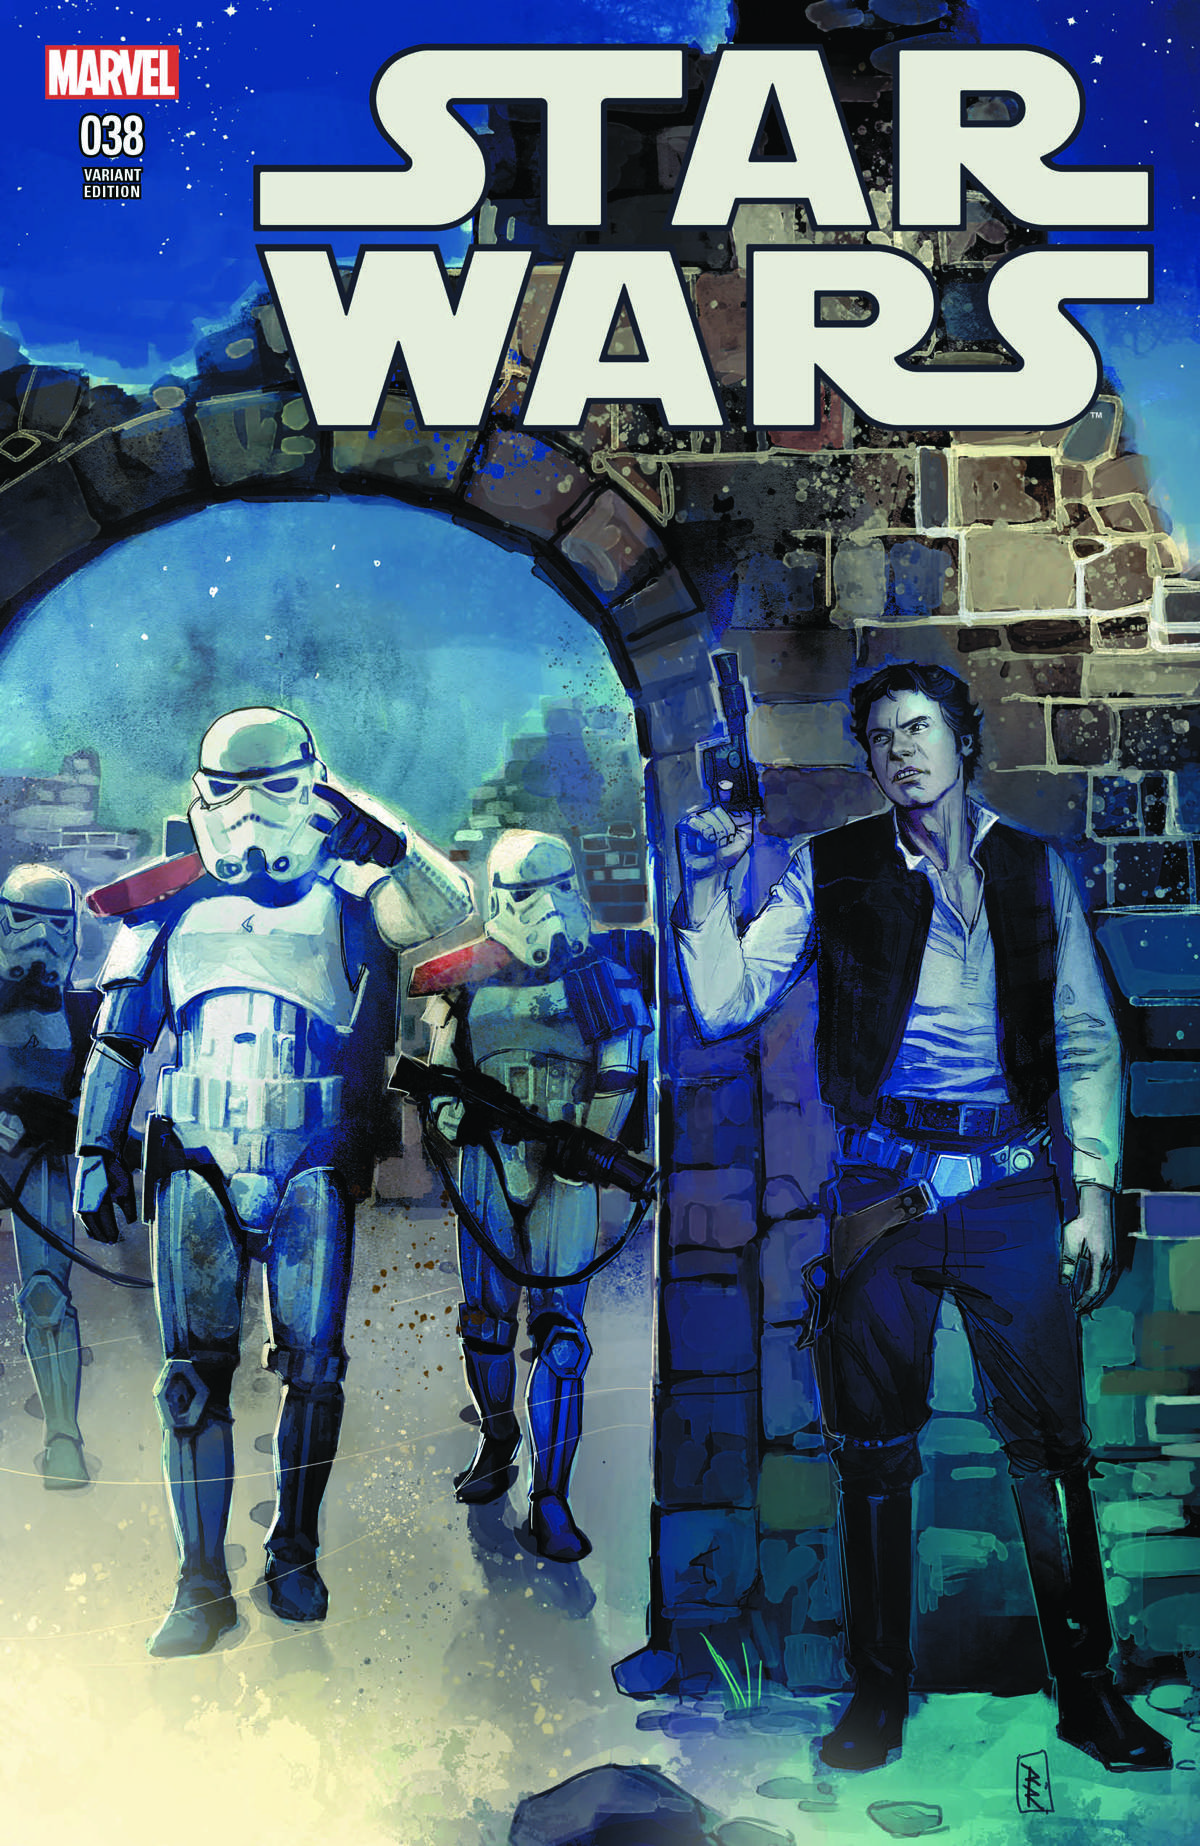 Star Wars 38 The Ashes of Jedha Part I Cover.jpg